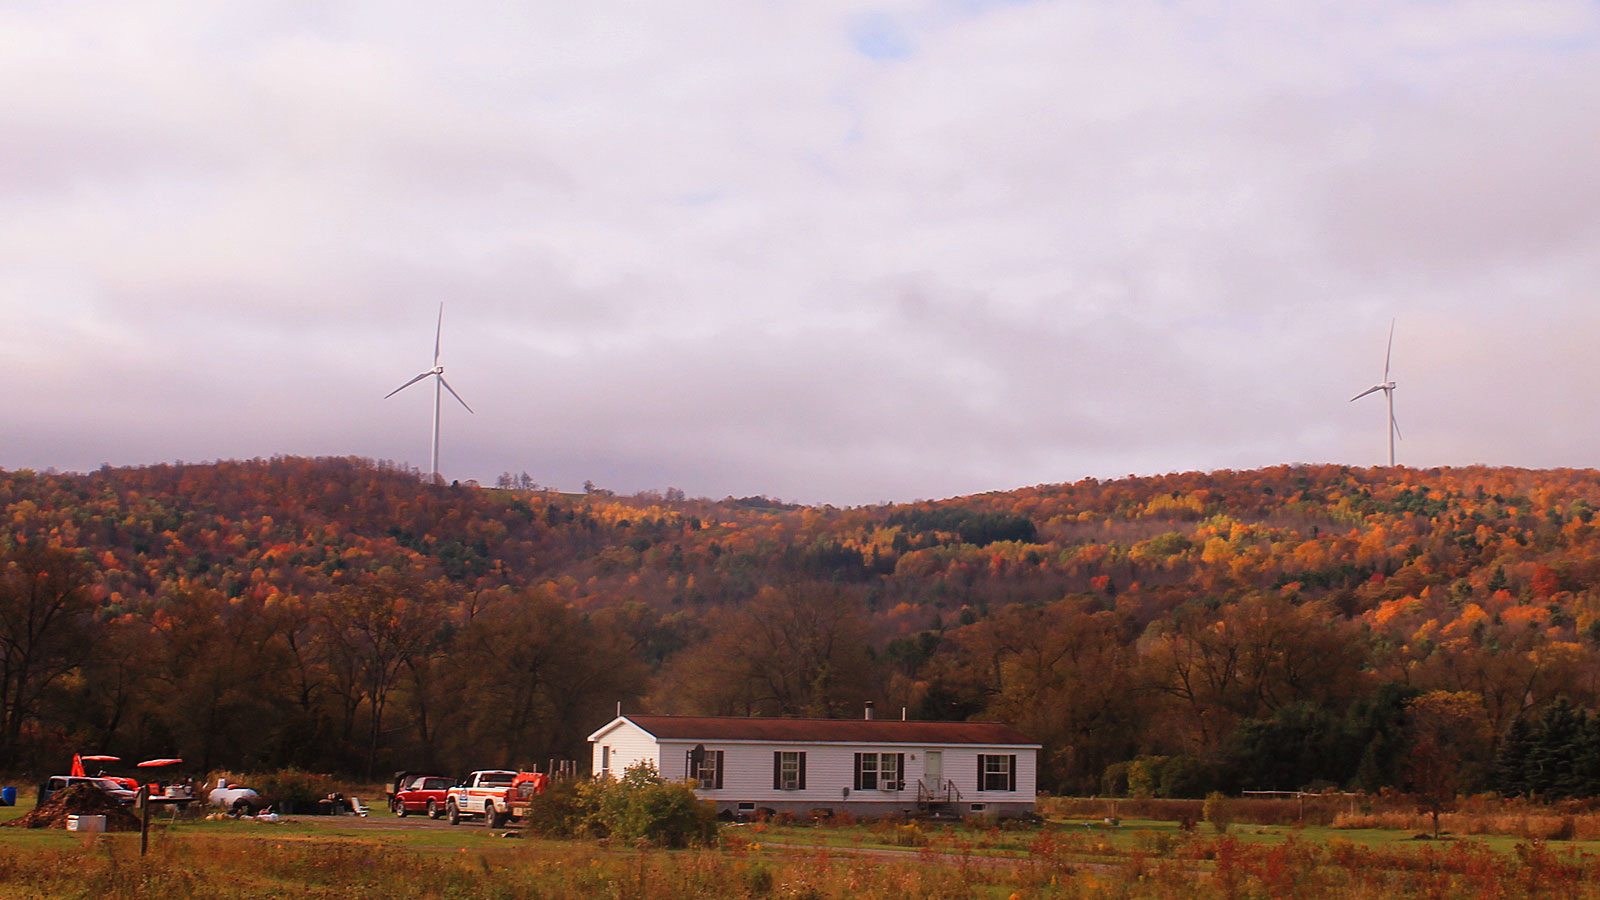 Countryside home and wind turbines